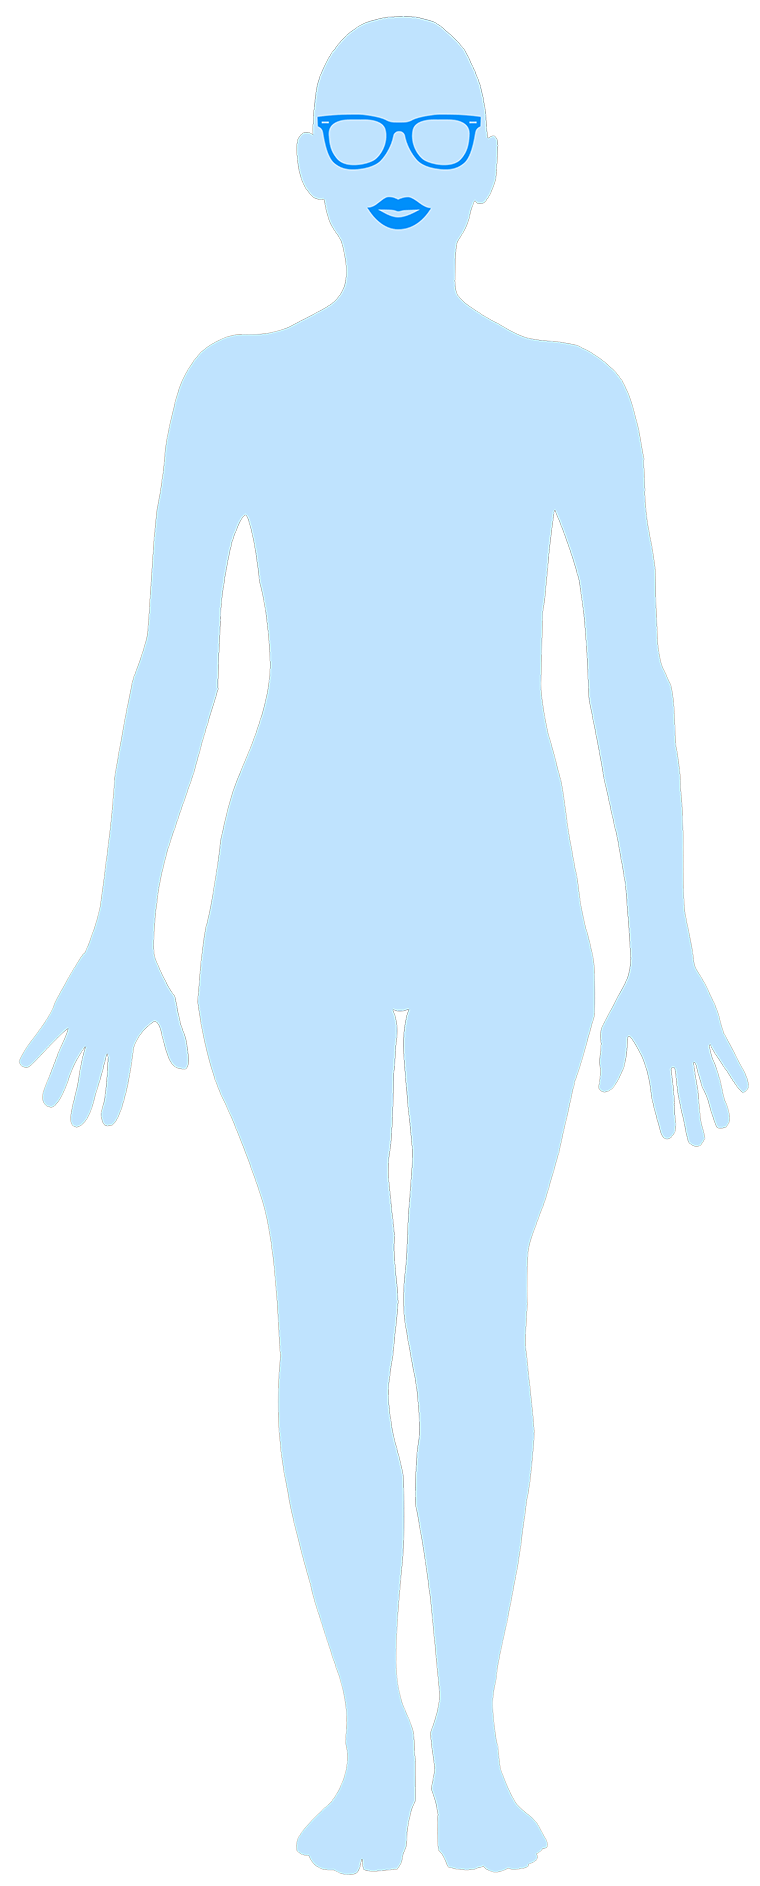 Here's a look at my figure outline without measuring marks.